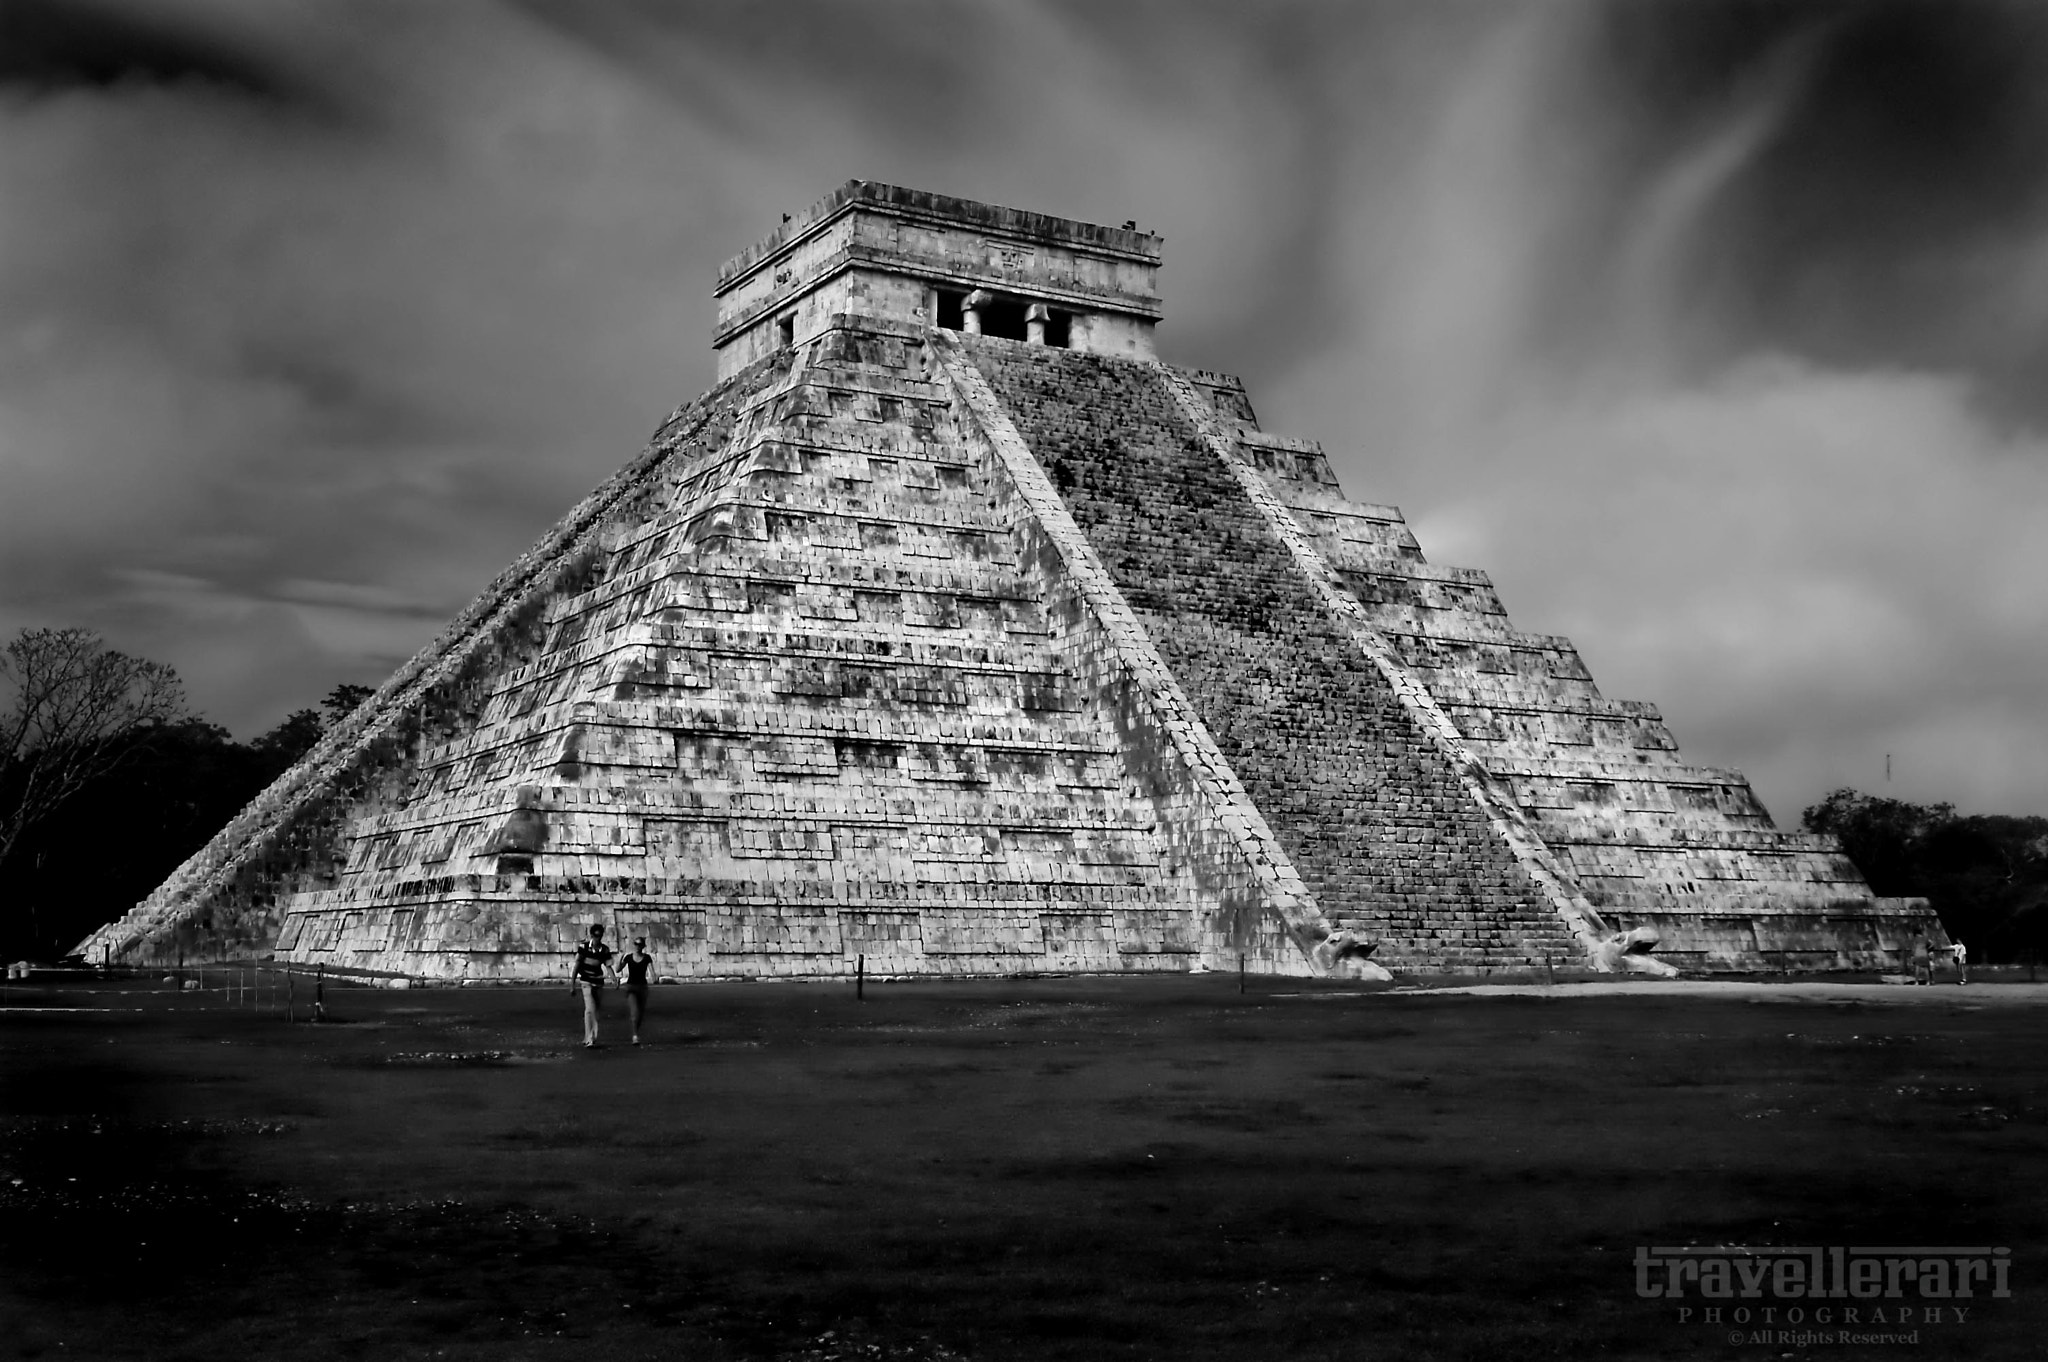 Photograph Chichen Itza by Ari Schwartz on 500px